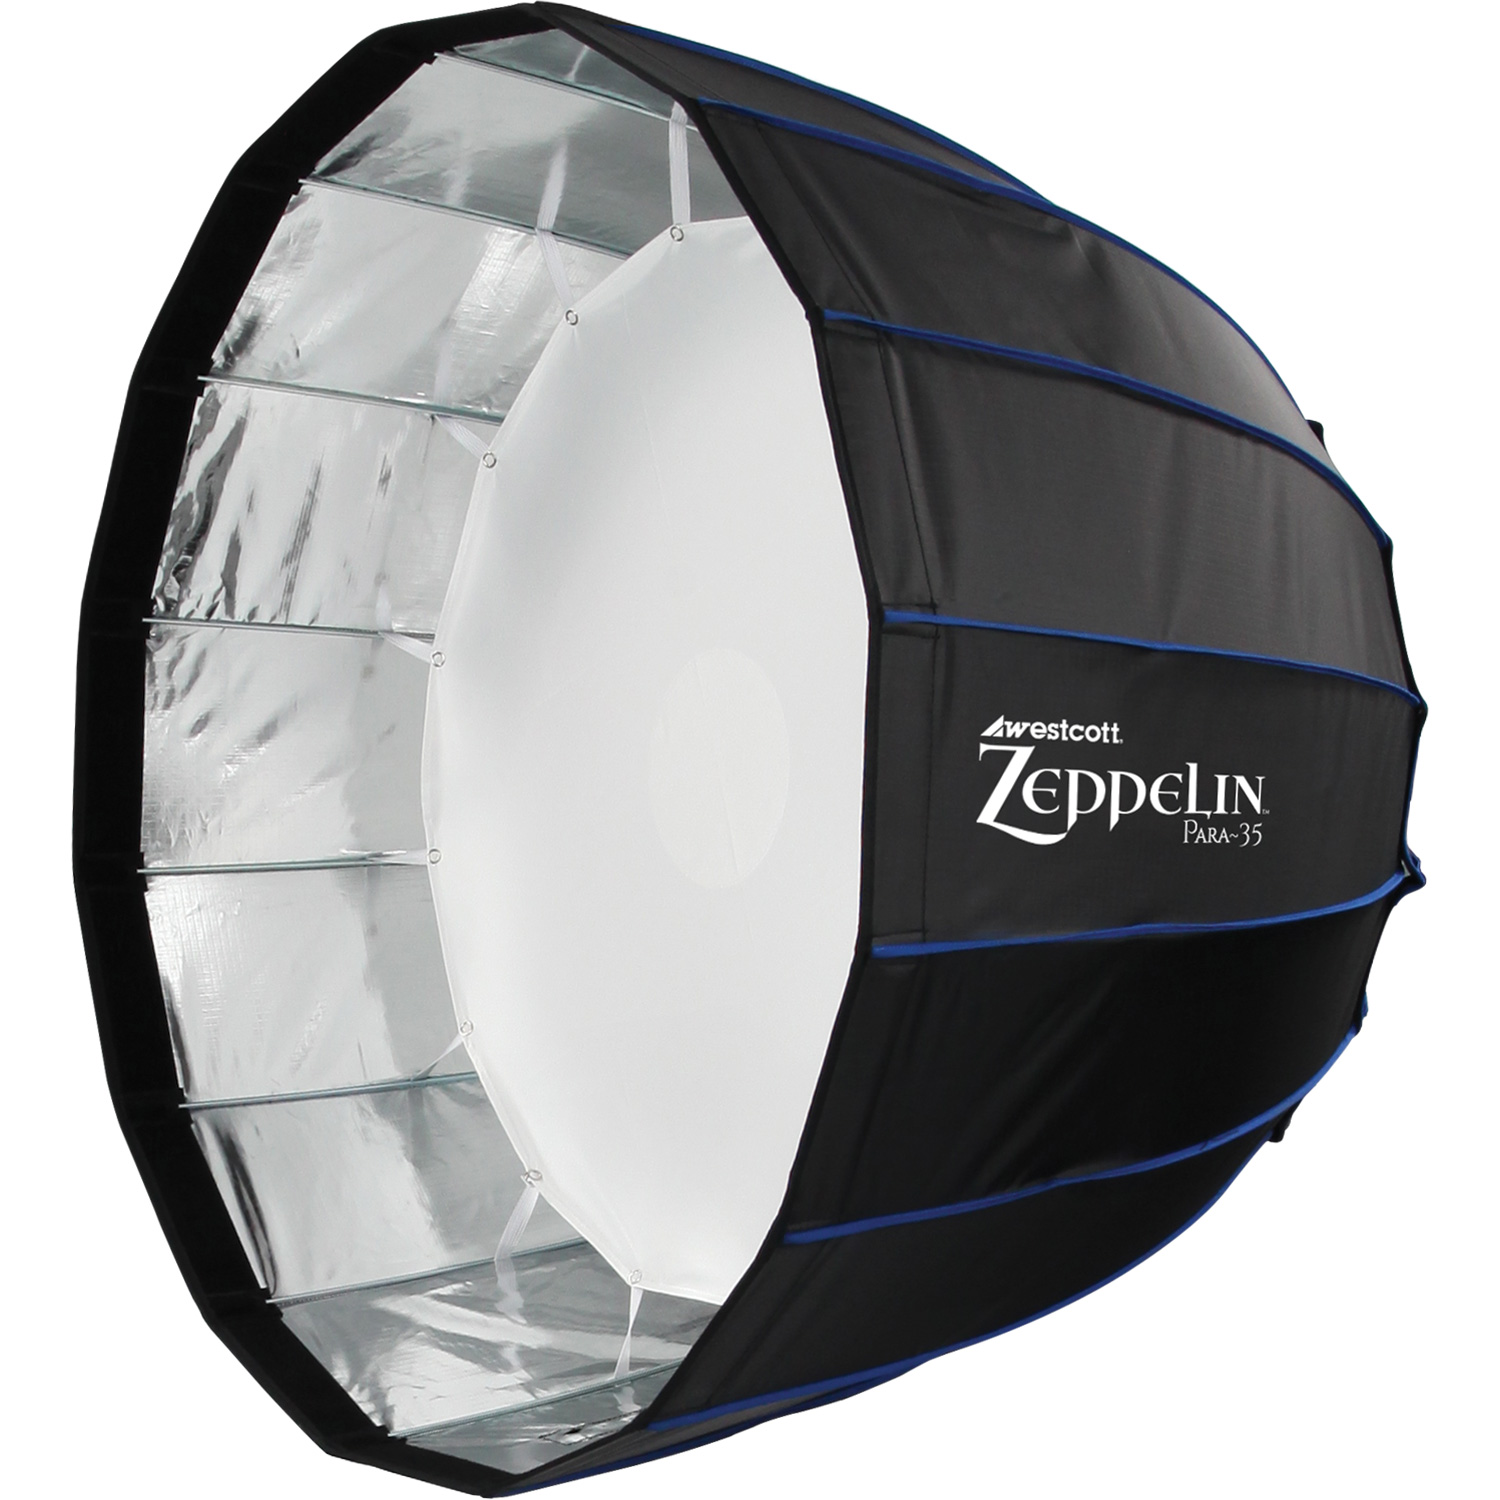 Zeppelin 35-in. Deep Parabolic Softbox